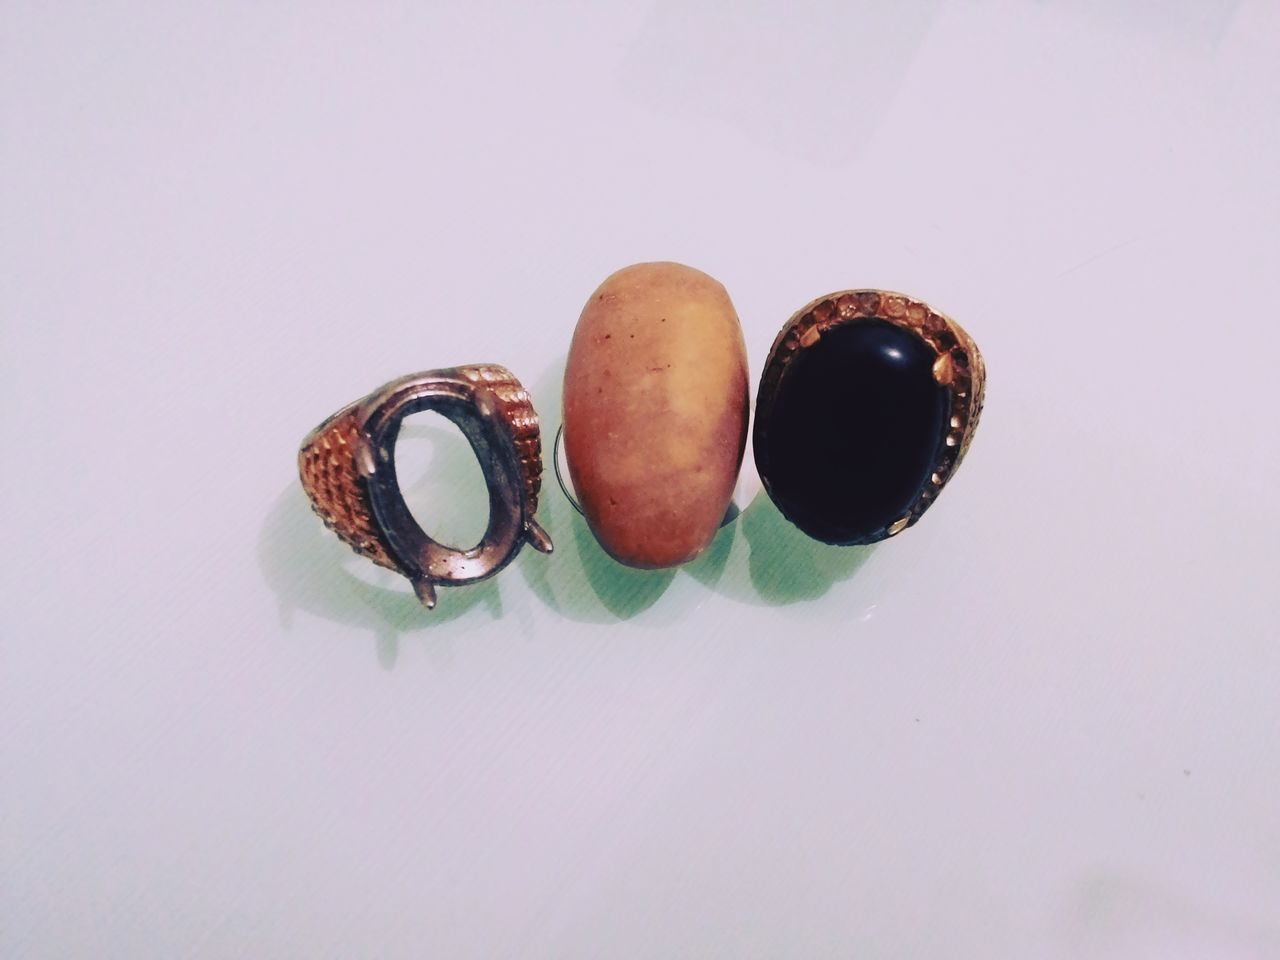 Stones Rings Acsessories Fashion Trends